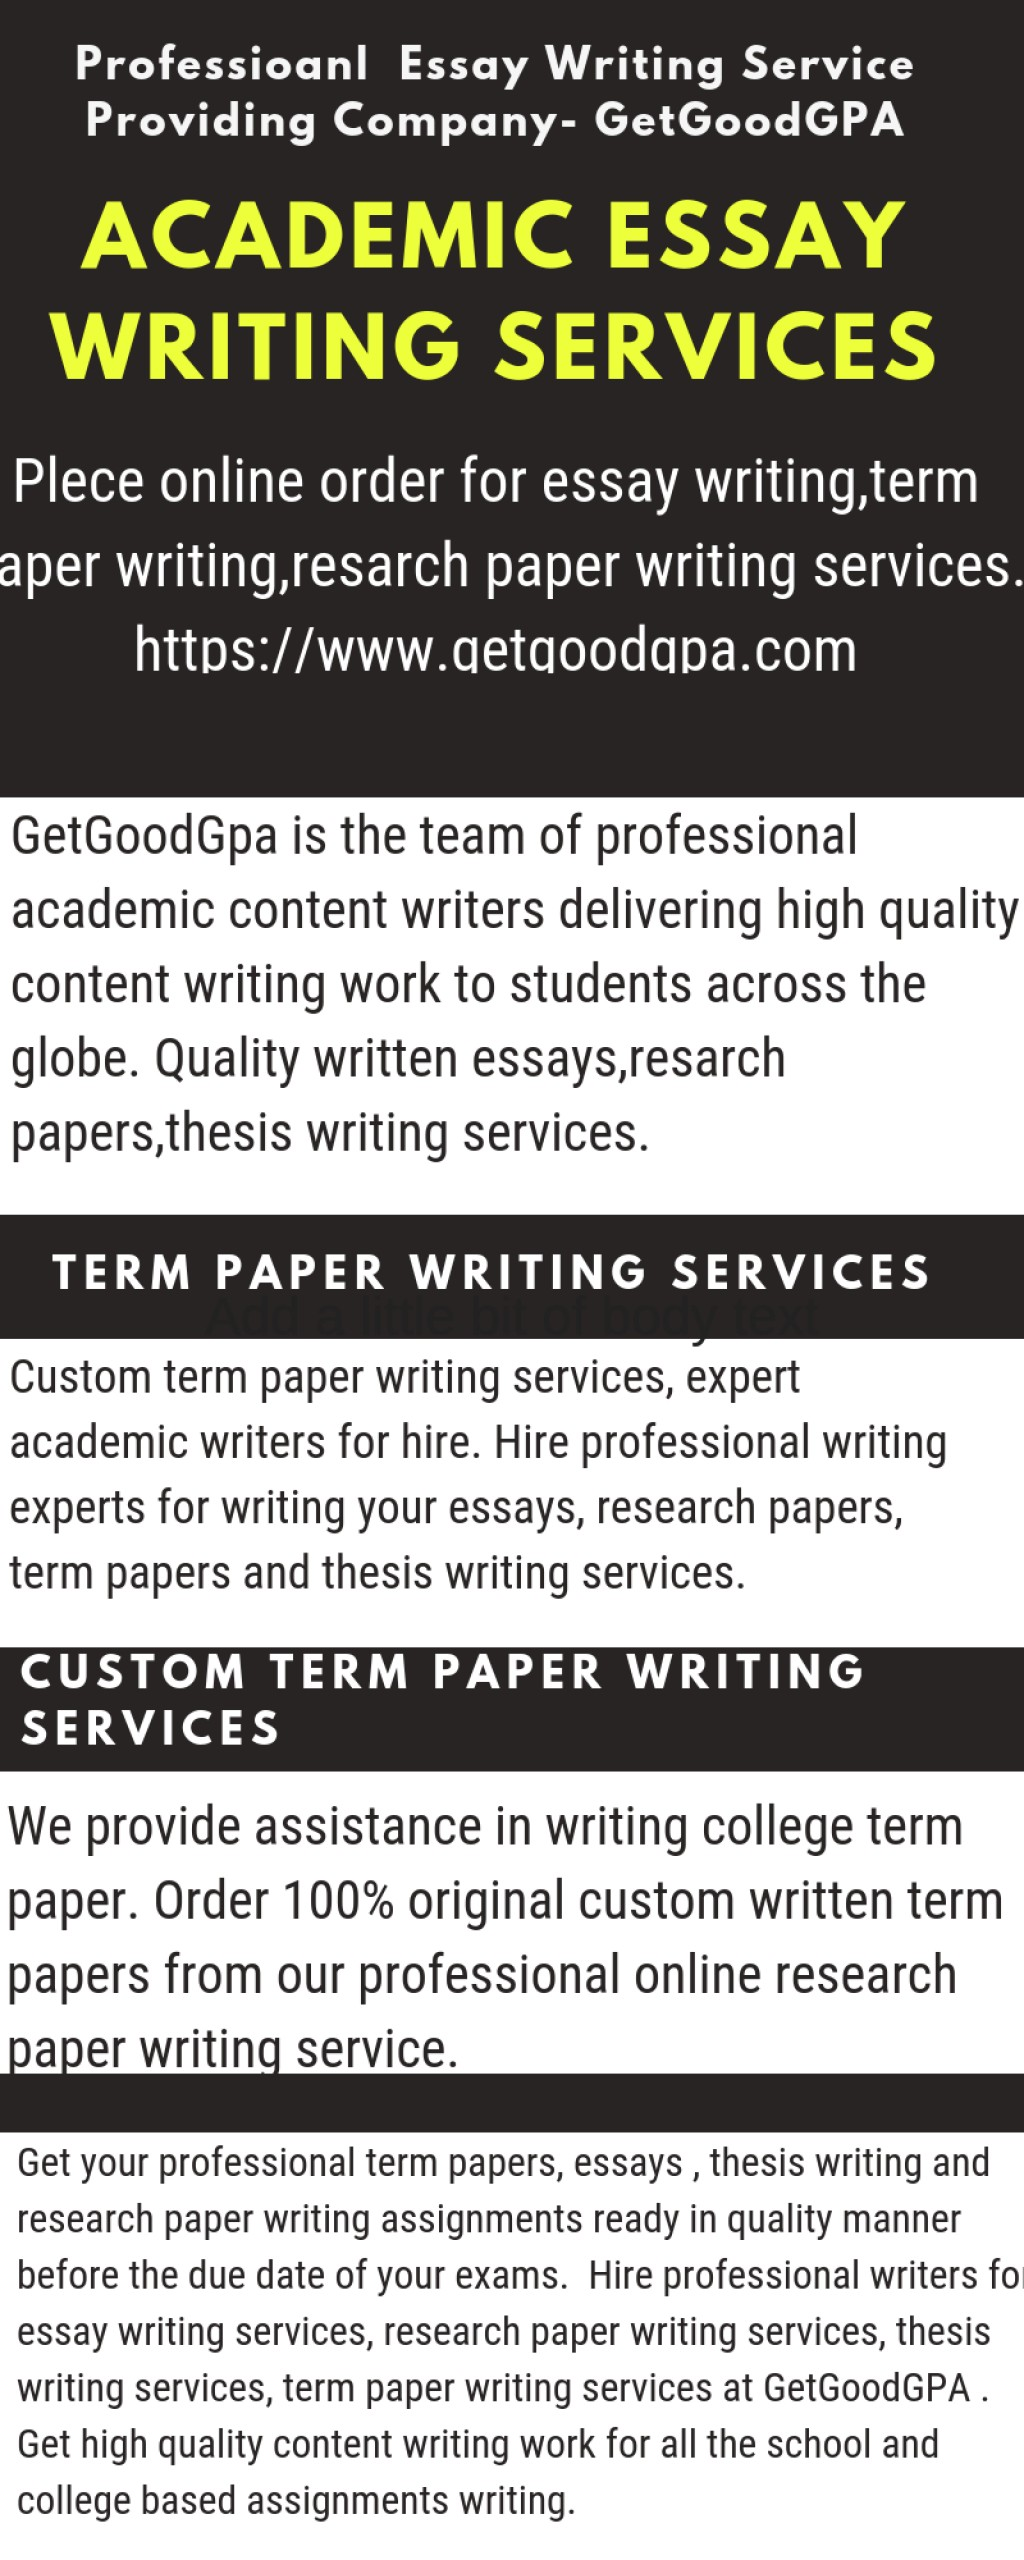 014 Research Paper Custom Writing Service Awesome Term Services Large